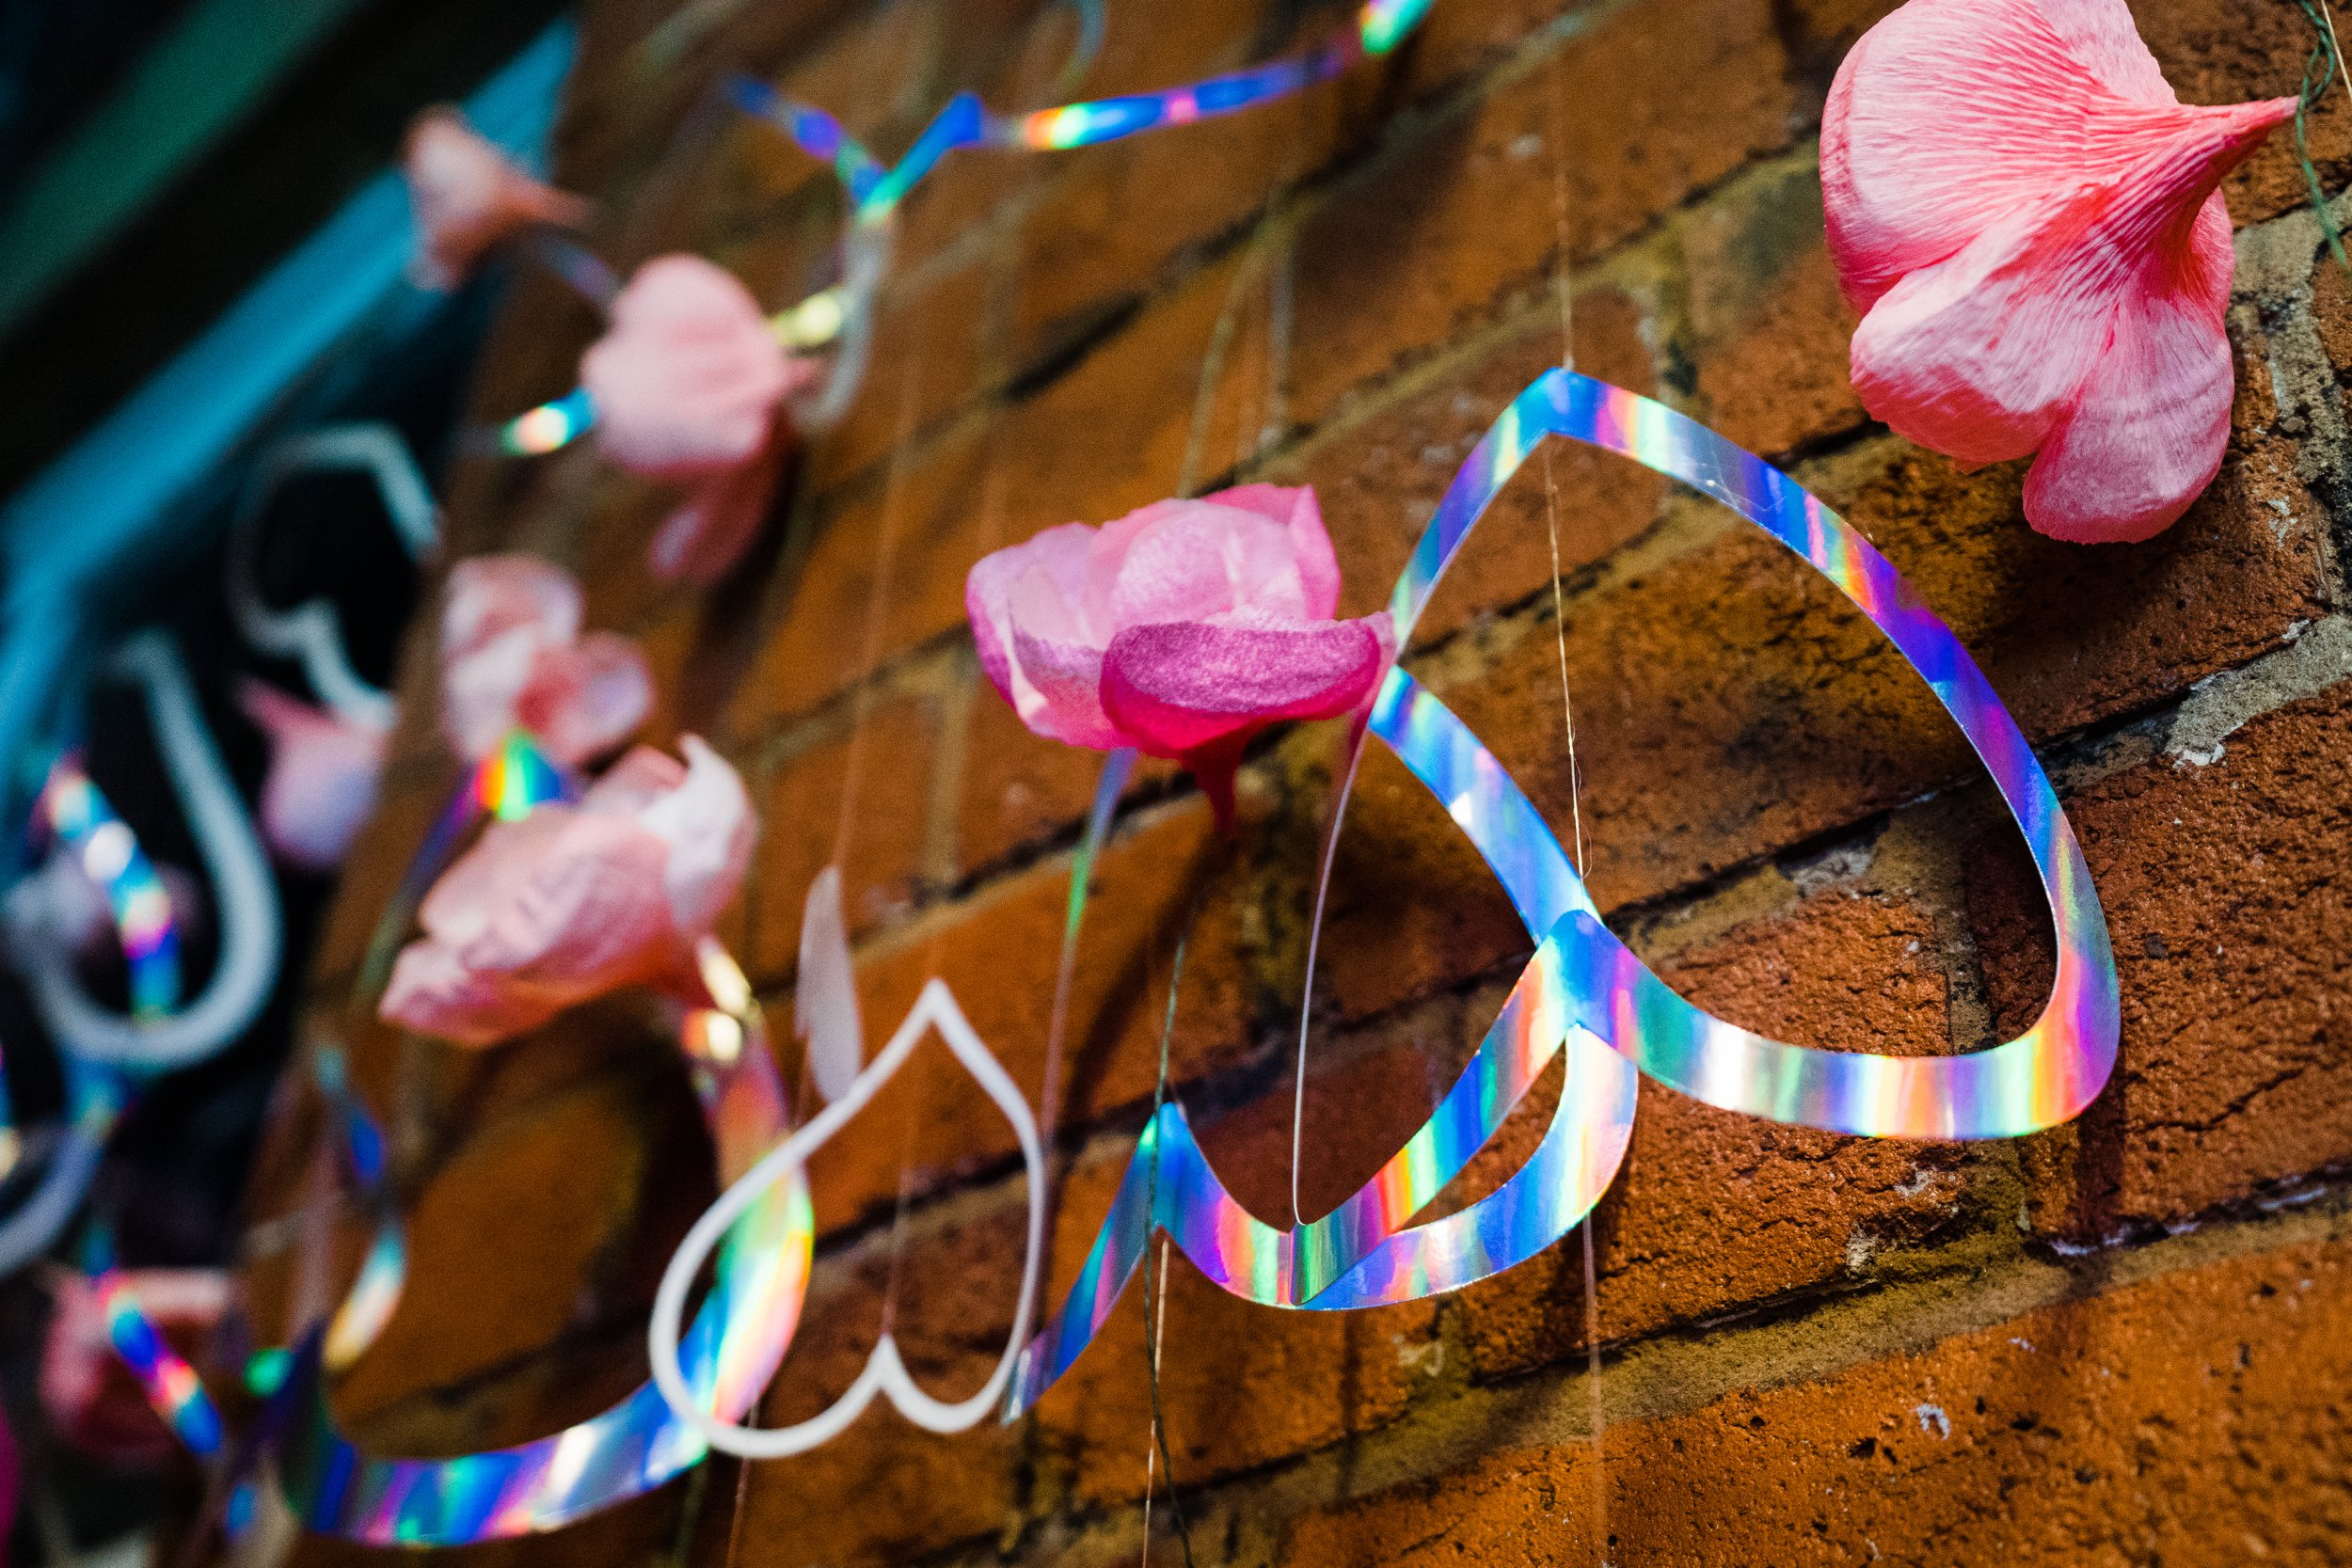 Rachel Emma Studio brings her famous holo decorations to the Leeds show